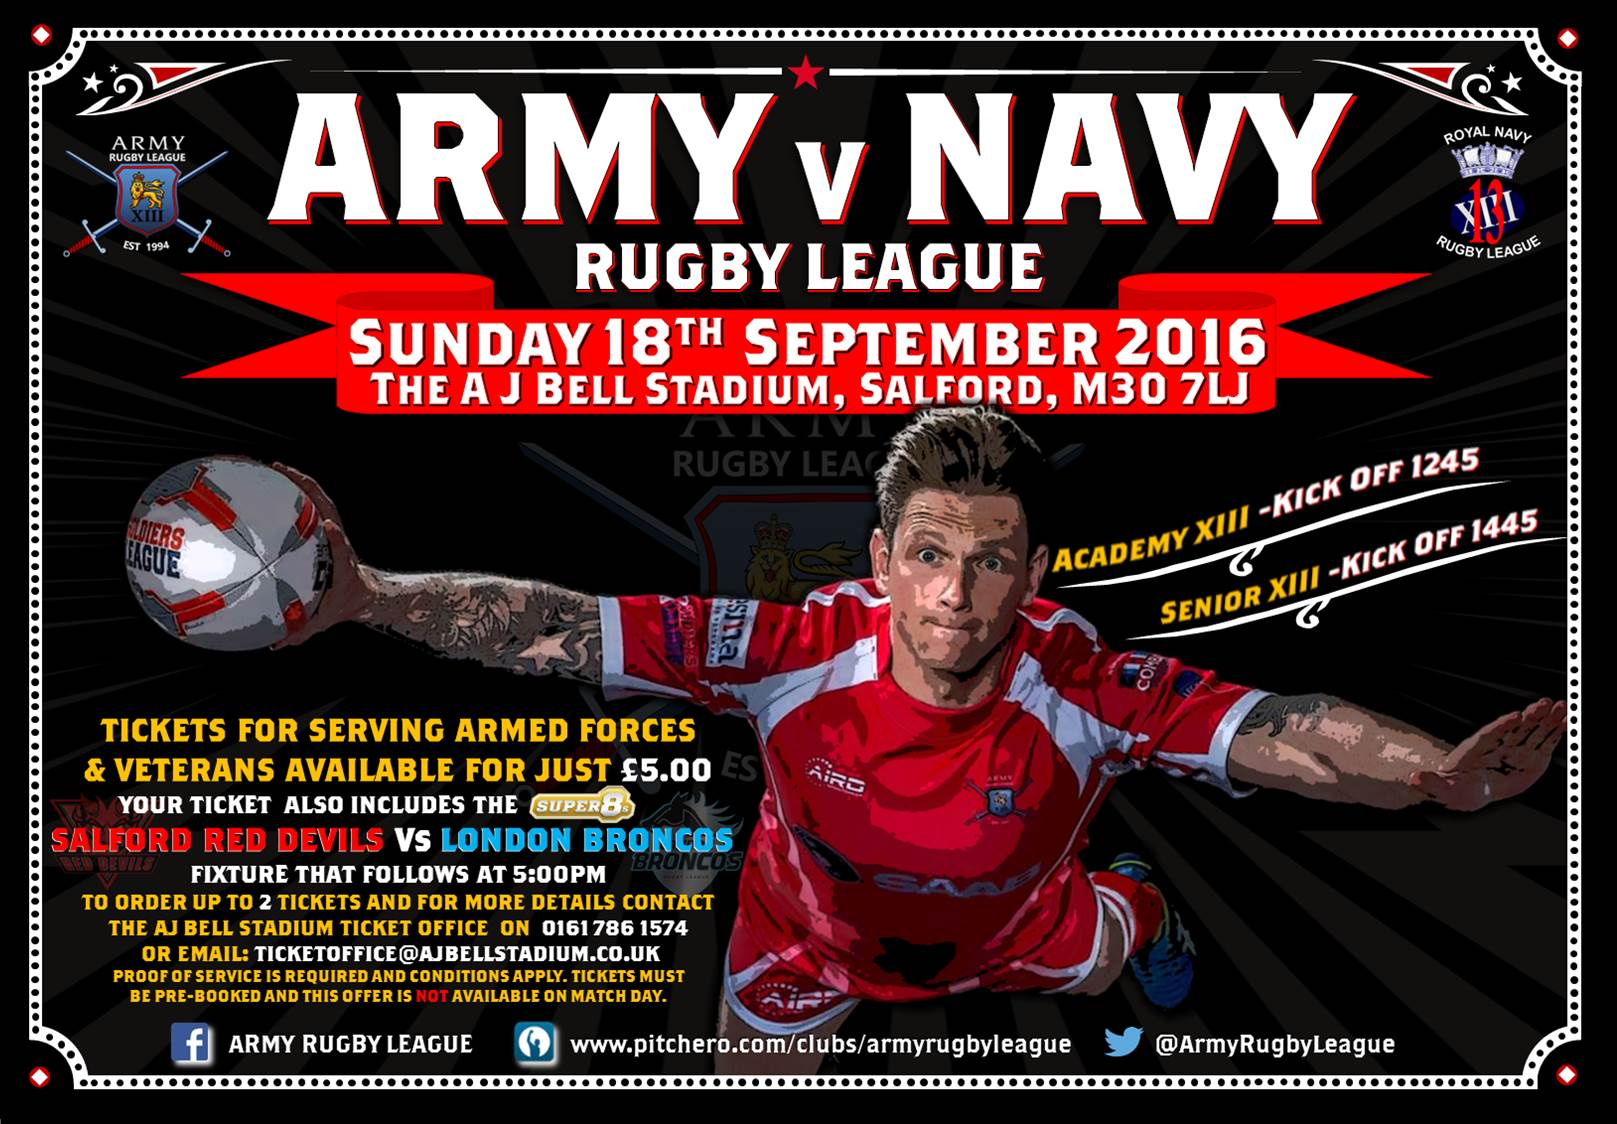 Army v Navy Rugby League game